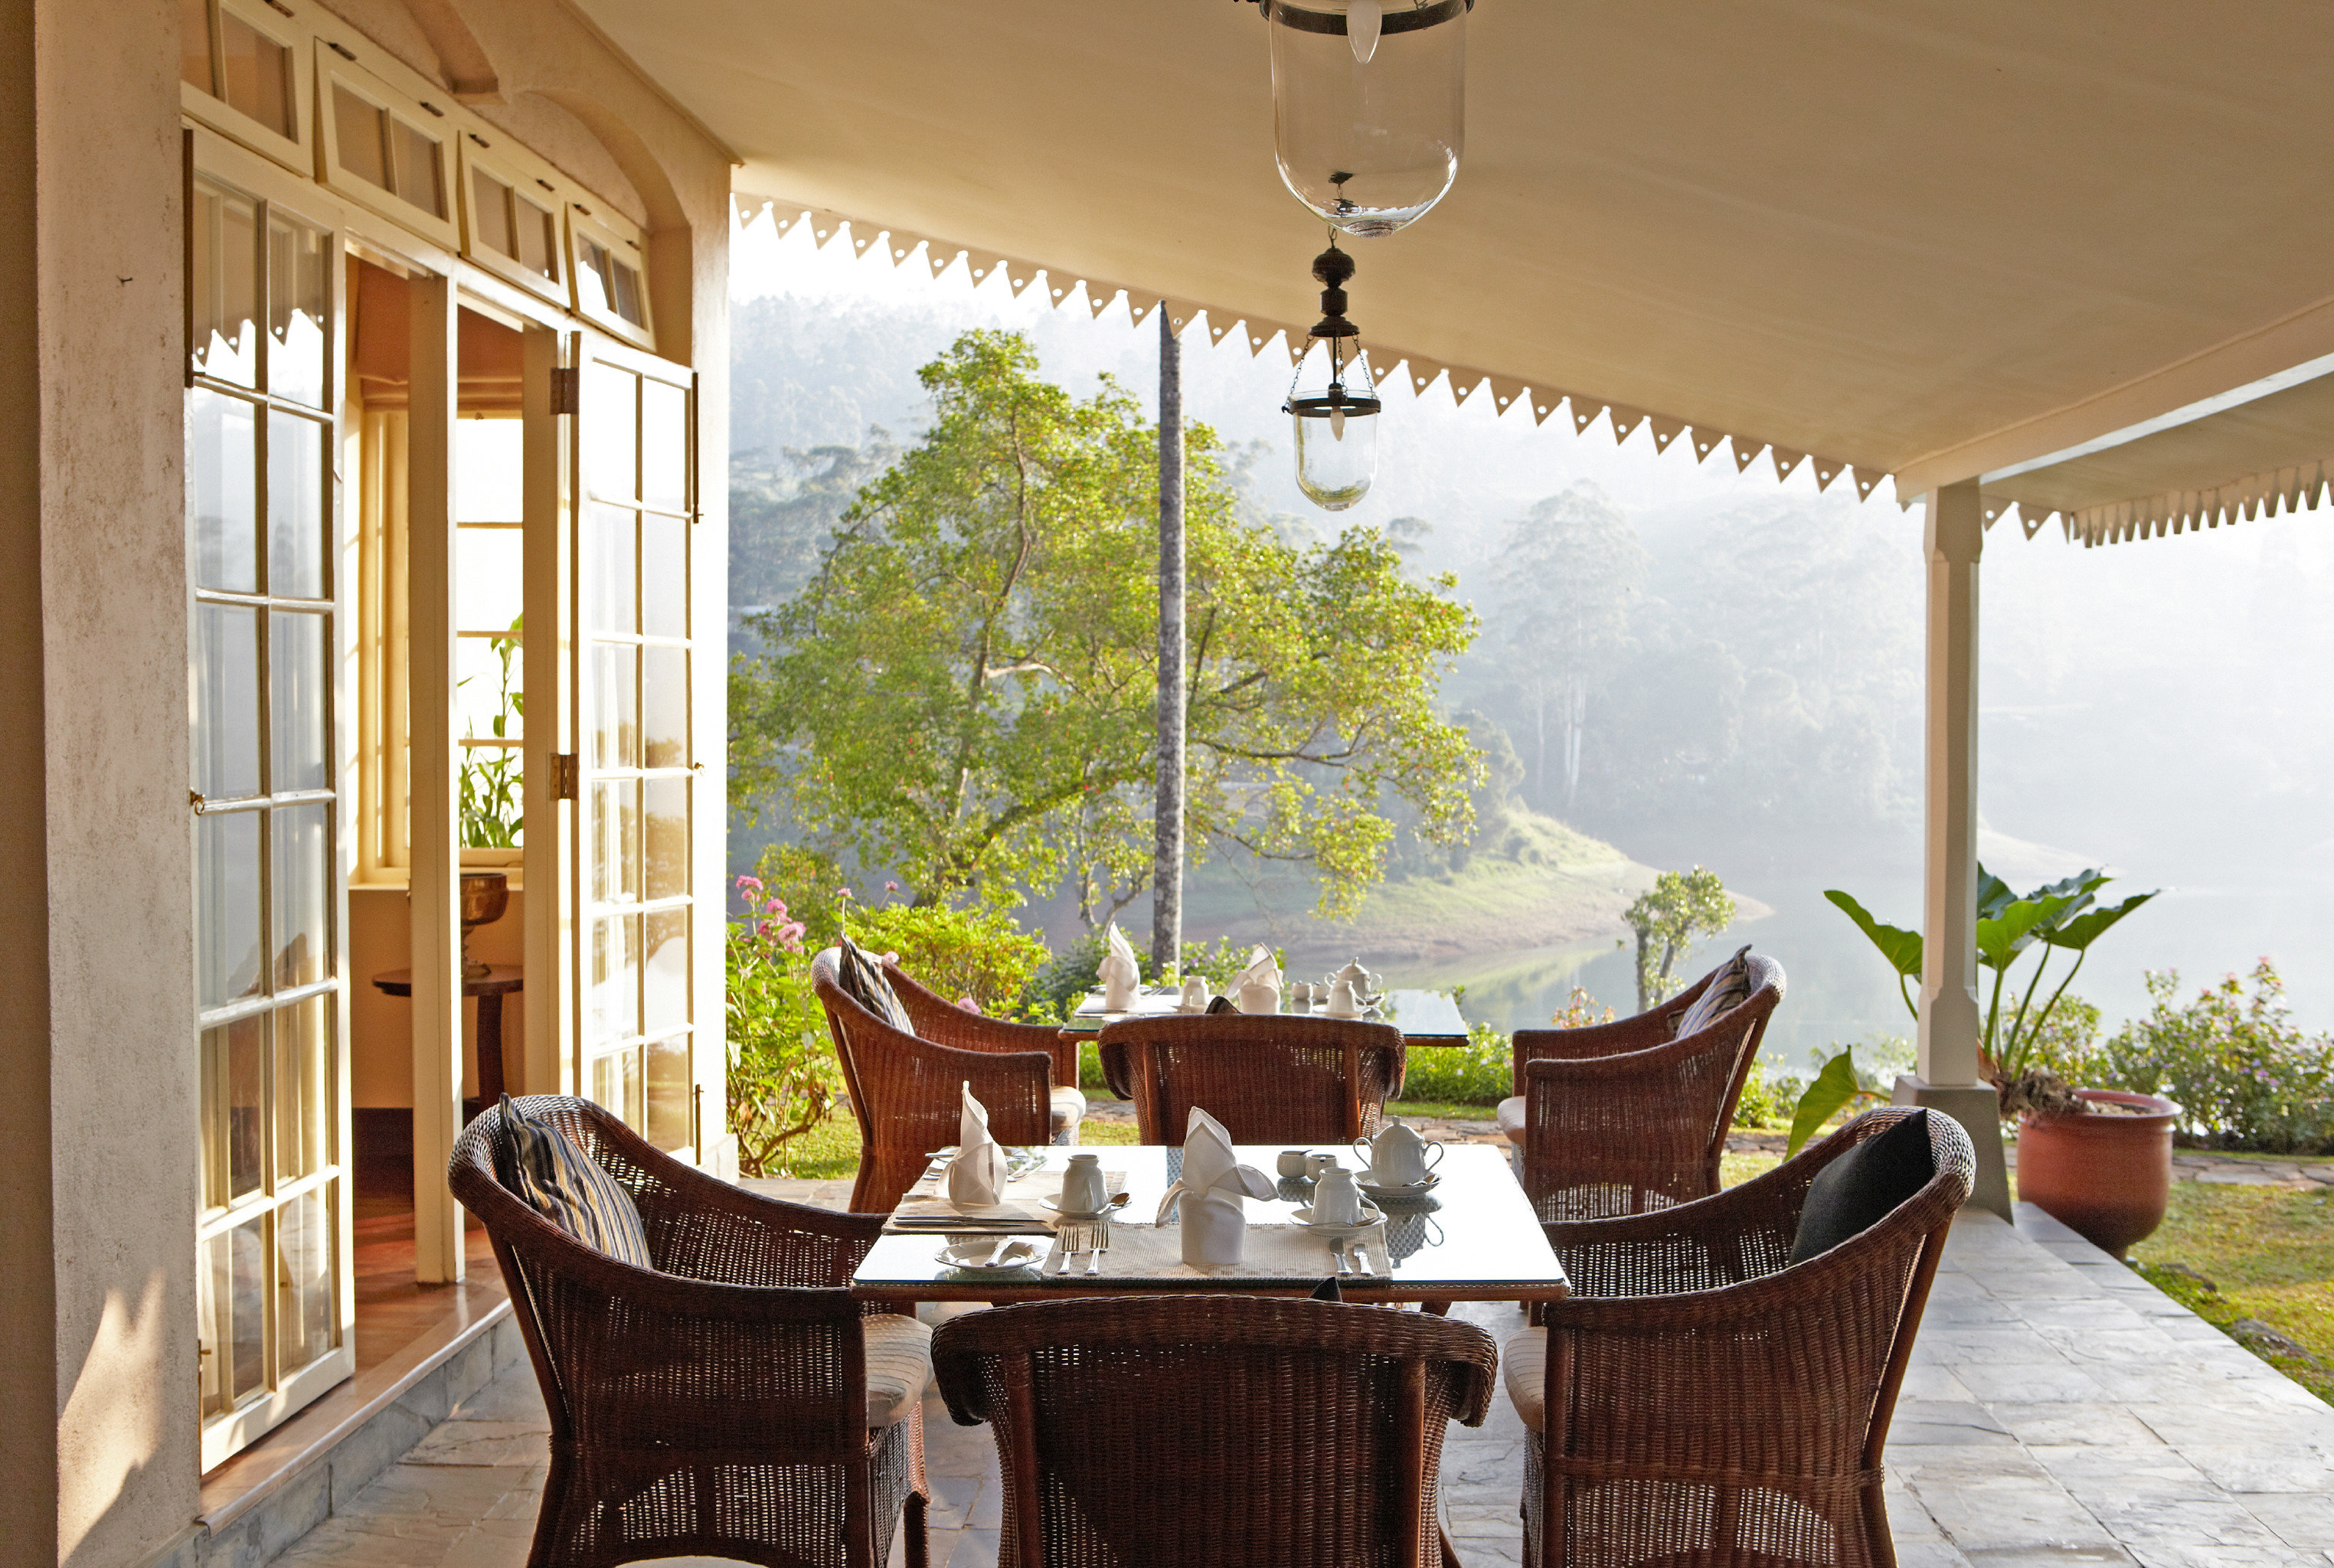 Dining Drink Eat Grounds Luxury Romantic Scenic views Terrace chair property house home living room porch cottage Villa farmhouse